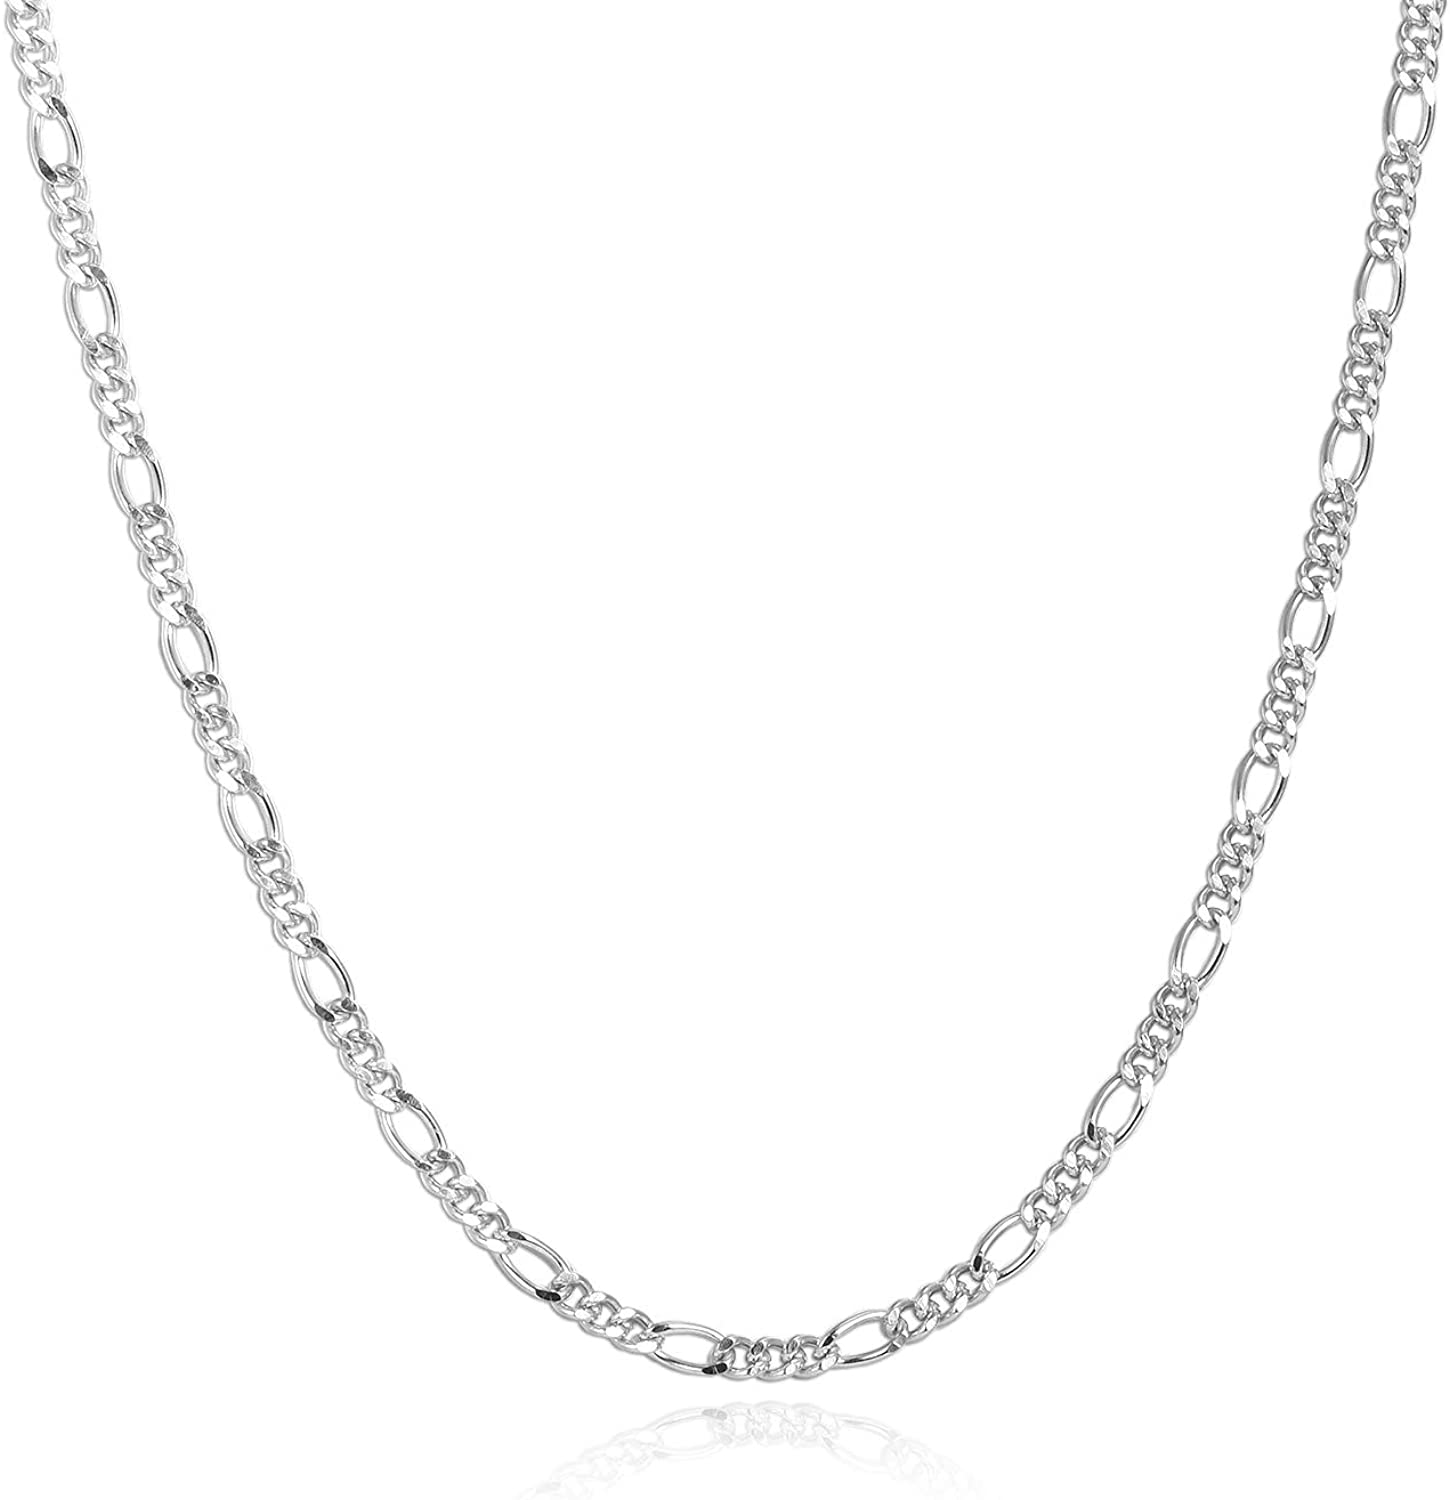 YFN 14k White Gold Plated 3mm Solid Sterling Silver Figaro Link Chain Necklace